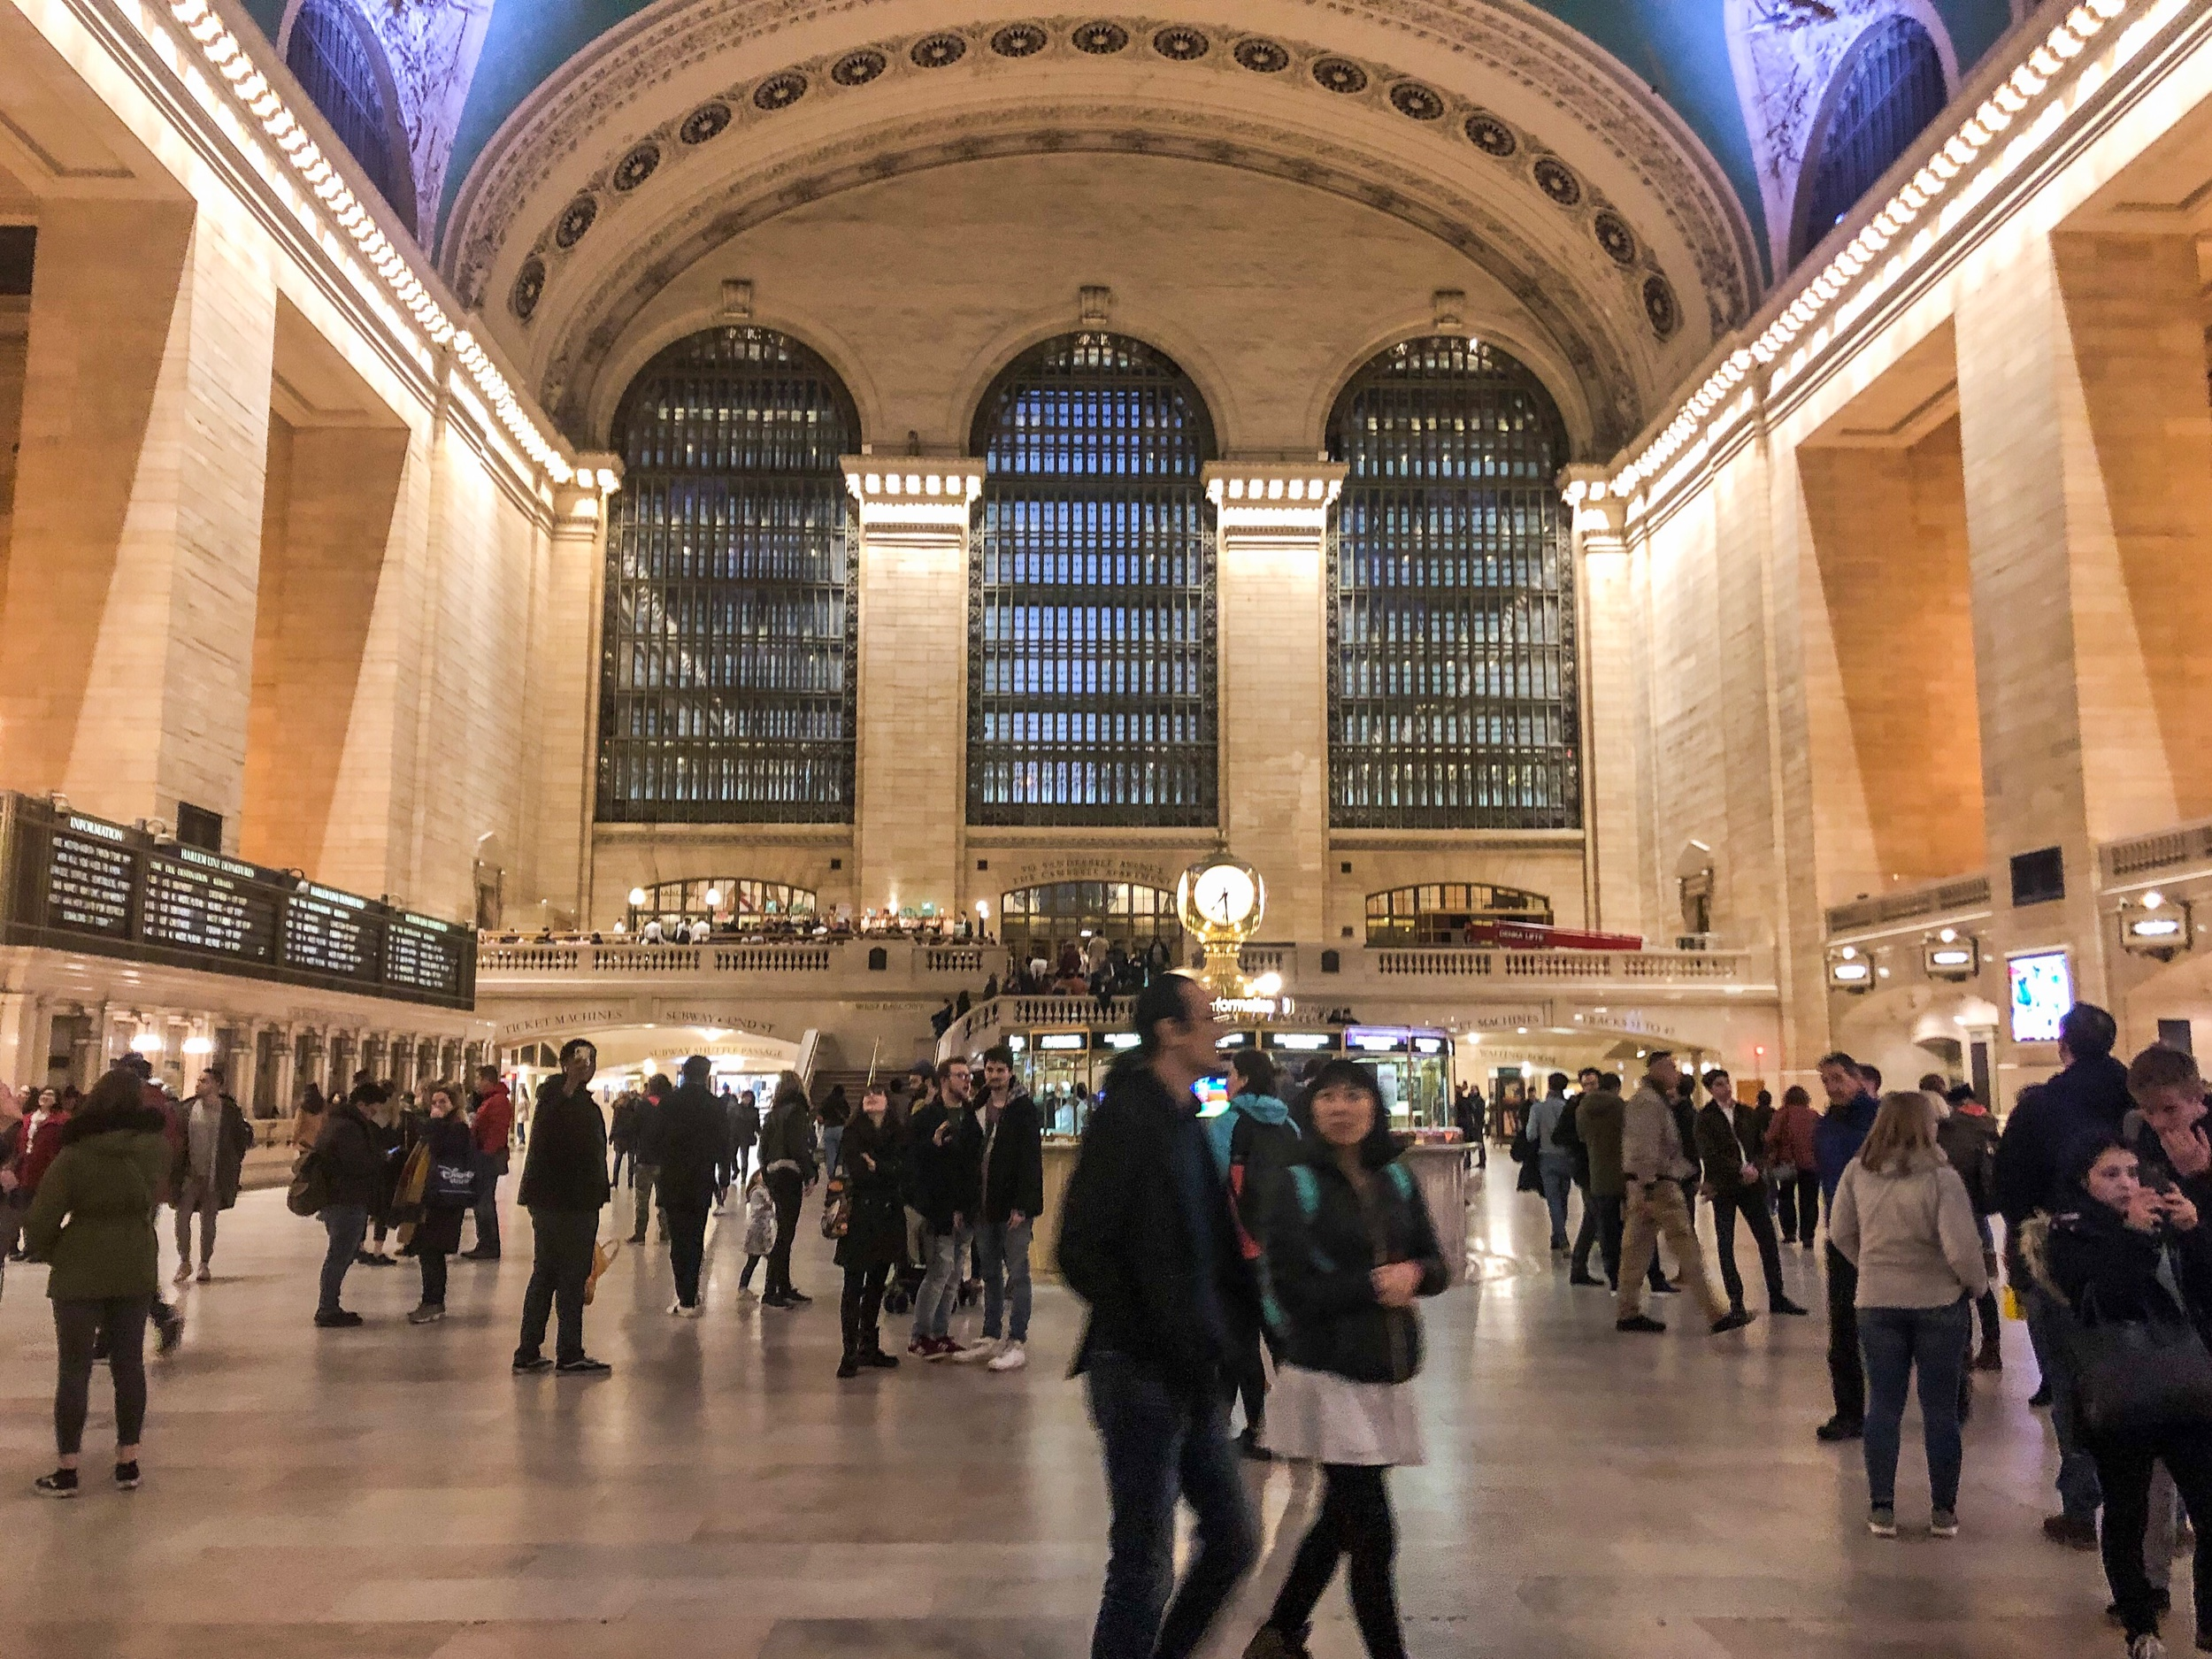 Grand Central Terminal & Whisper Wall | free - Grand Central Terminal at 42nd Street and Park Avenue Midtown Manhattan will be sure to take you to some movie scene memories! Don't forget to check out the whisper wall too.